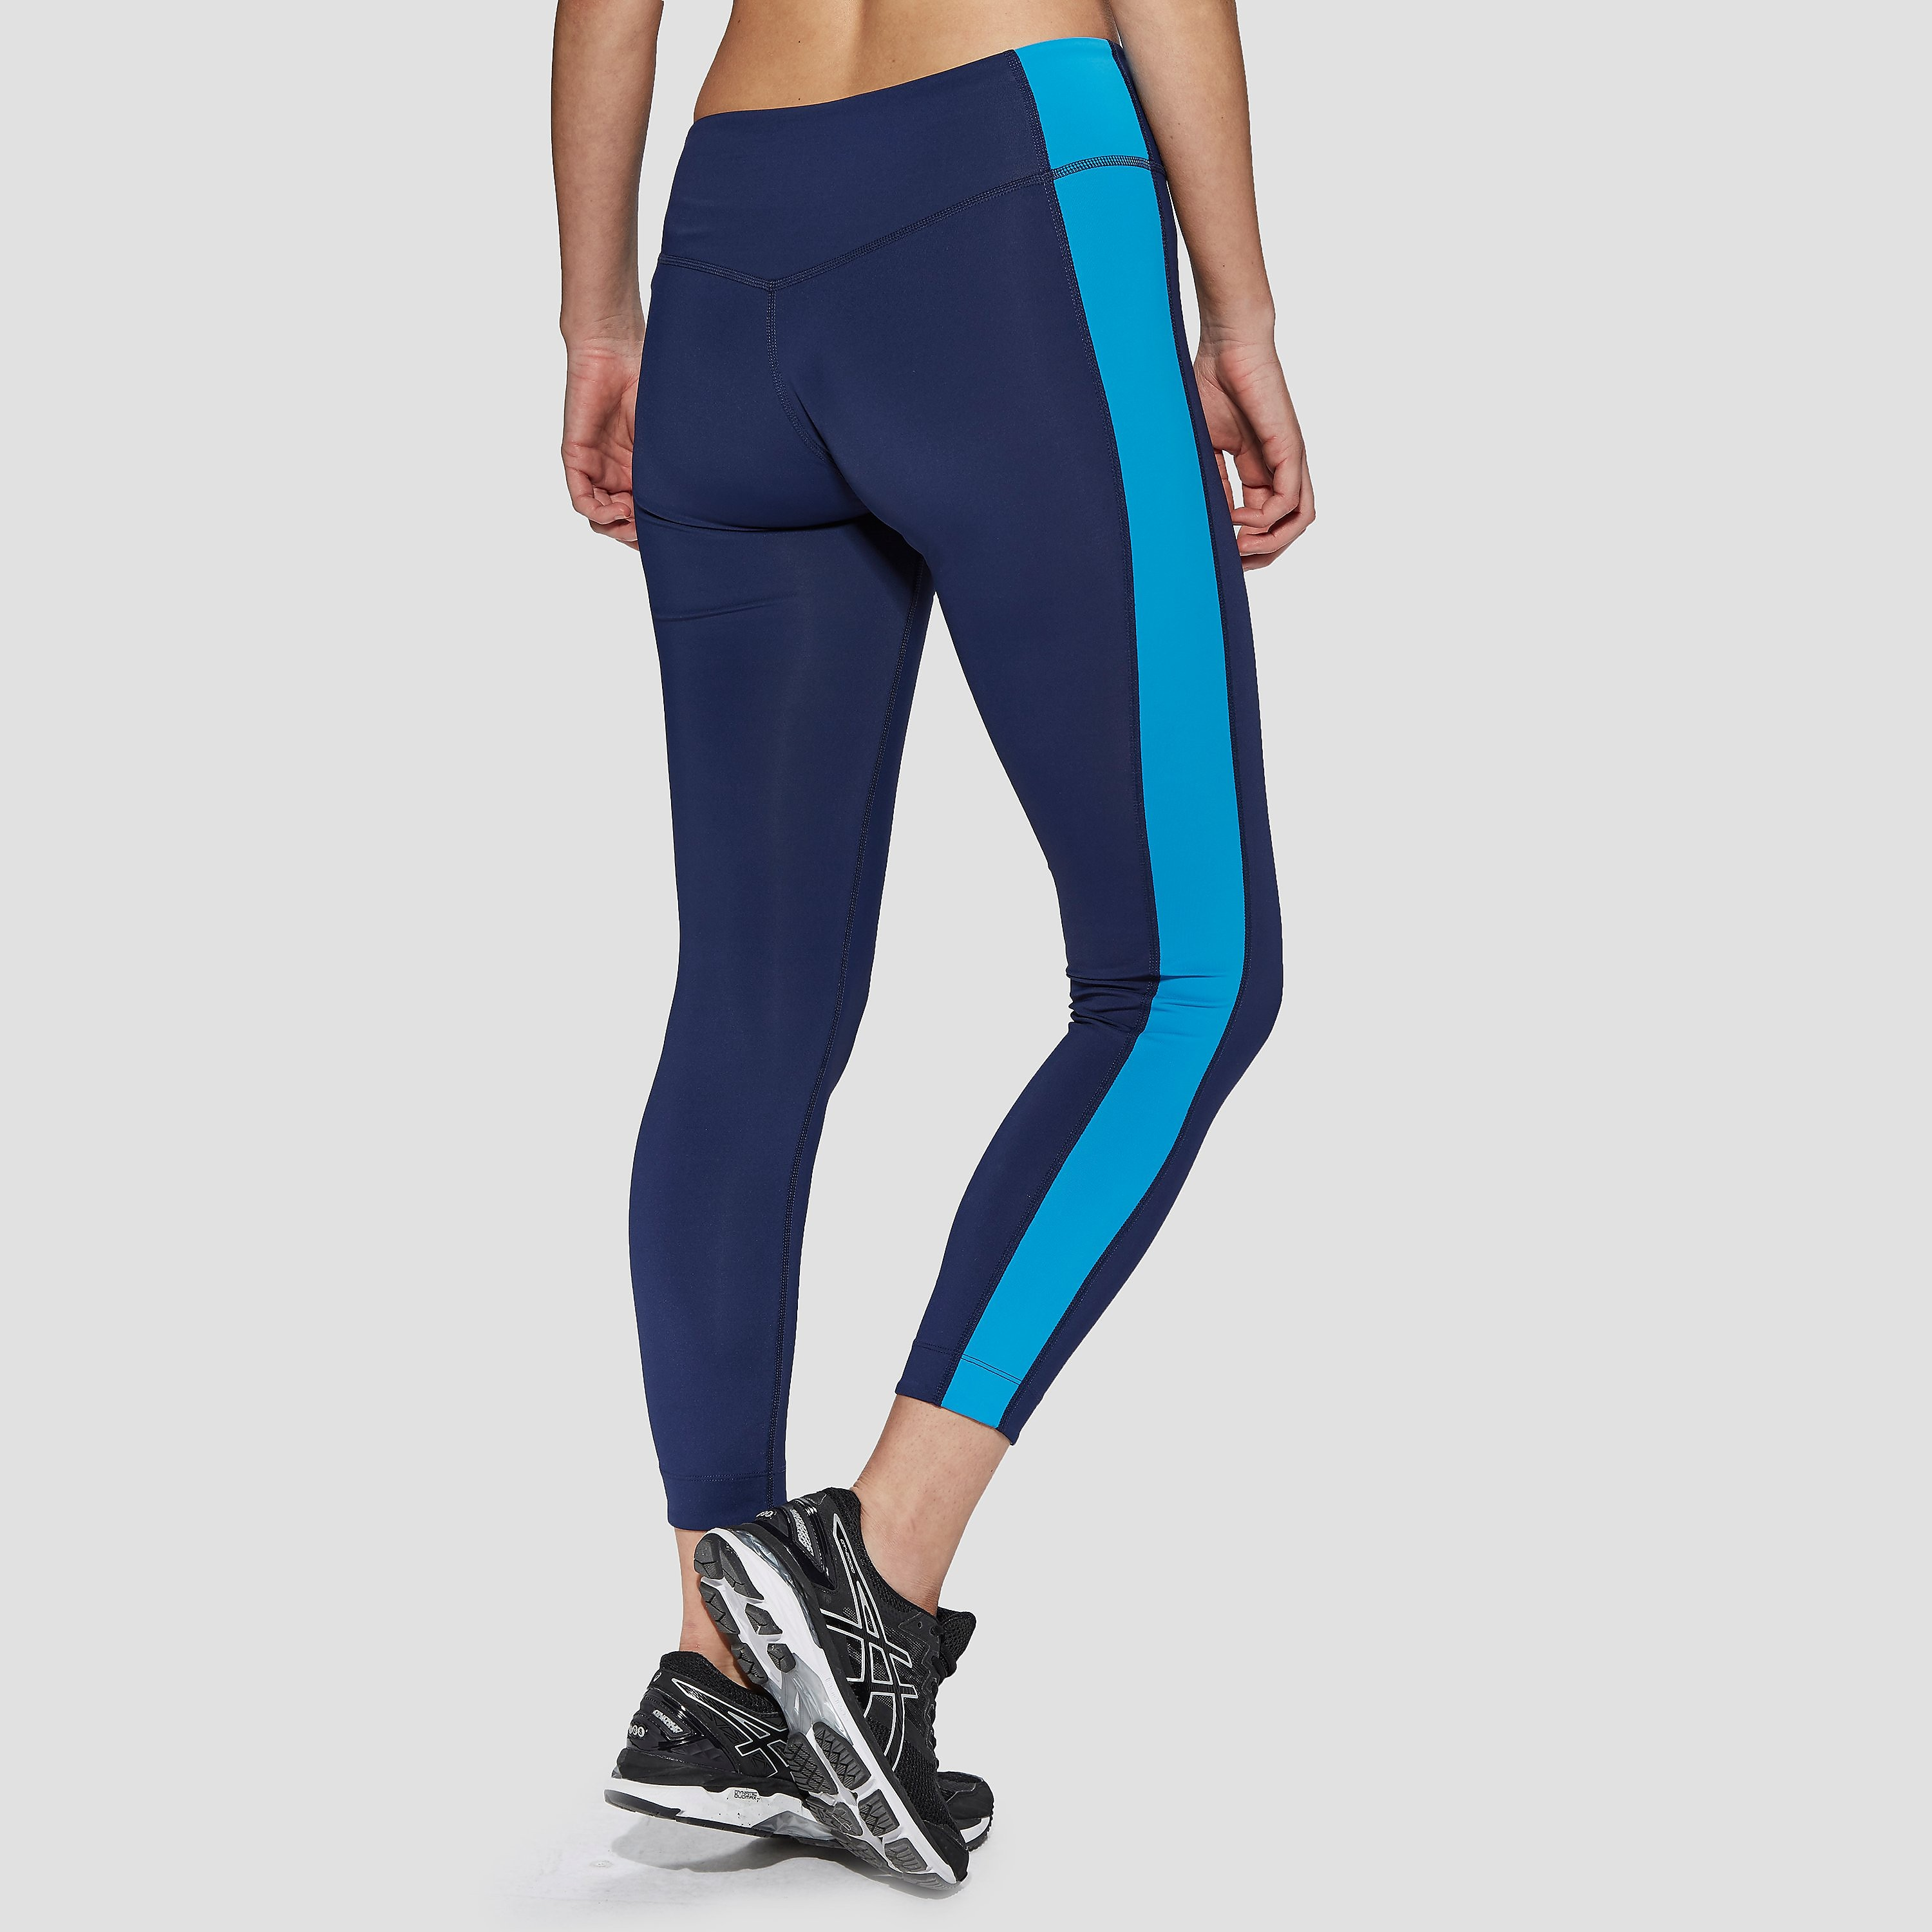 ASICS 7/8 Women's Running Tights